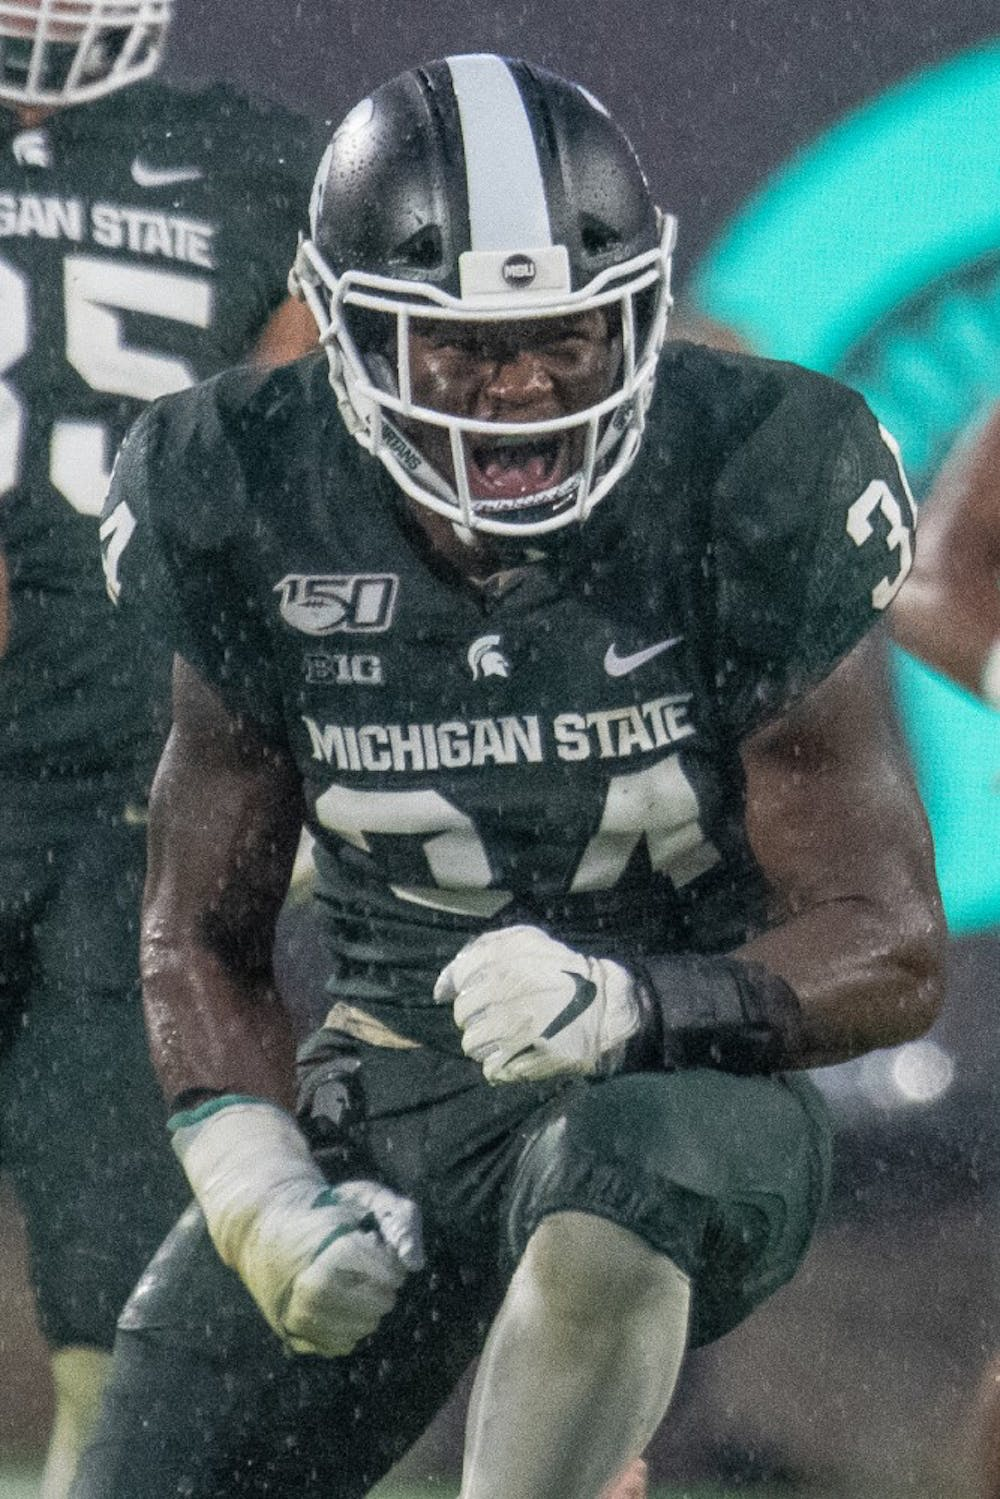 <p>Junior linebacker Antjuan Simmons (34) celebrates during the game against Penn State on Oct. 26, 2019 at Spartan Stadium. The Spartans fell to the Nittany Lions, 28-7.</p>